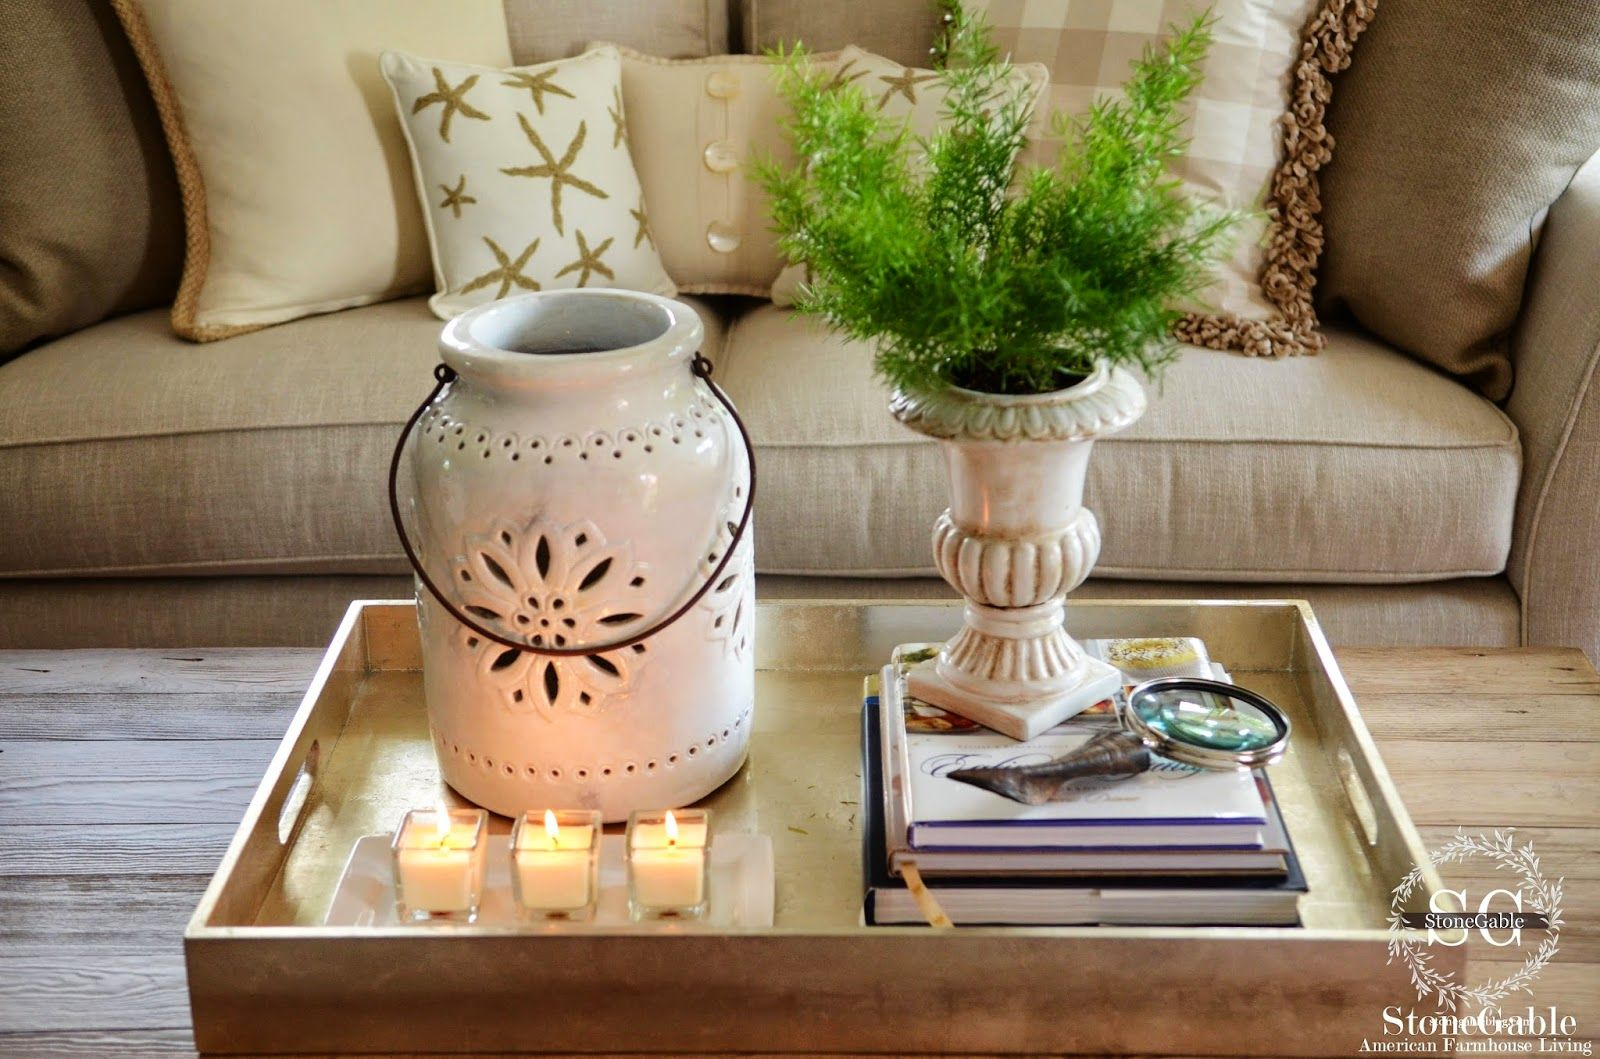 How To Decorate A Coffee Table Like A Pro Stonegable Coffee Table Decor Tray Coffee Table Decor Living Room Table Decor Living Room [ 1059 x 1600 Pixel ]